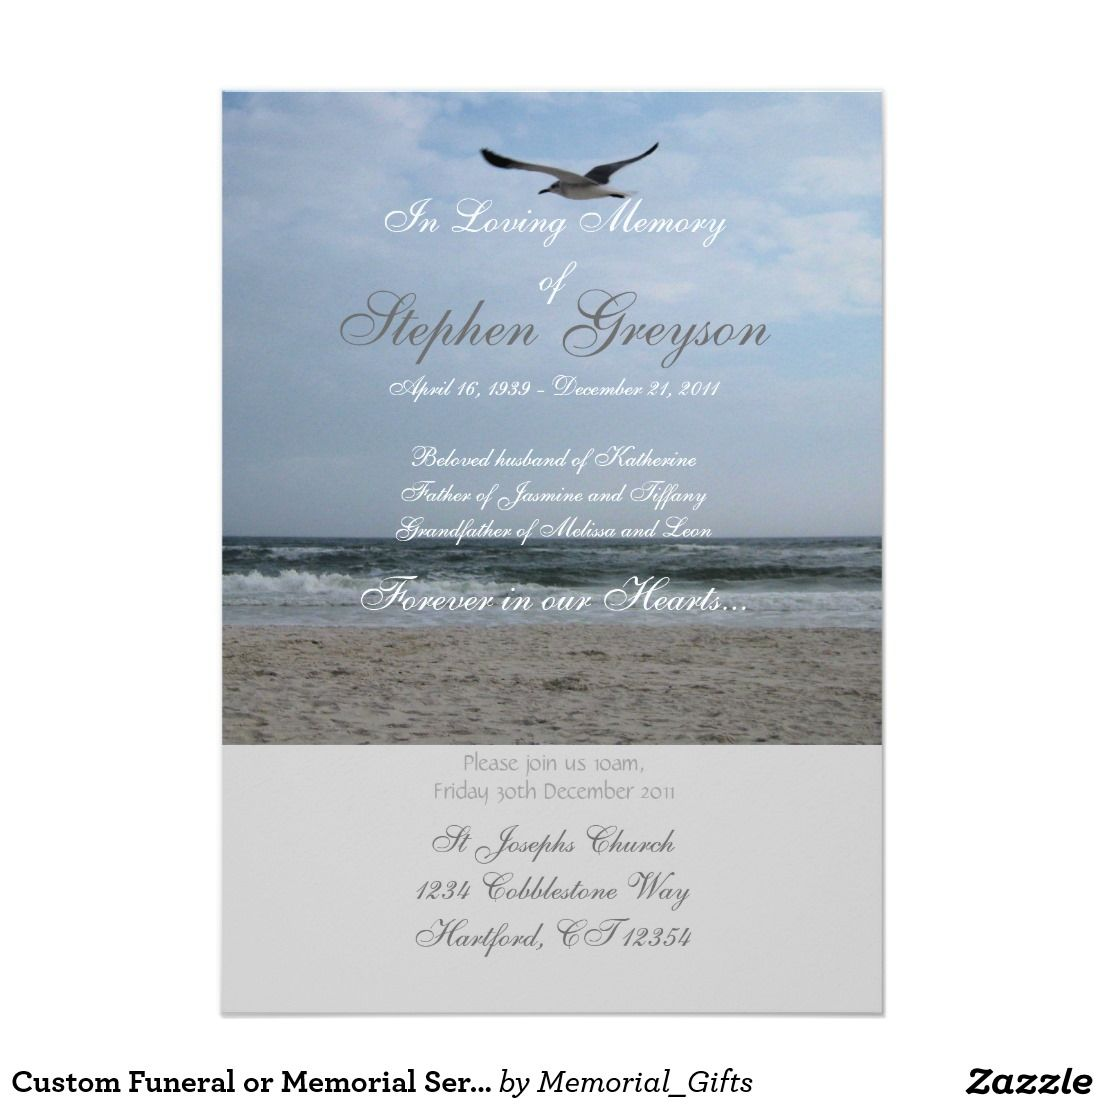 Custom Funeral or Memorial Service Invitation 5 X 7 Invitation – Invitation to a Funeral